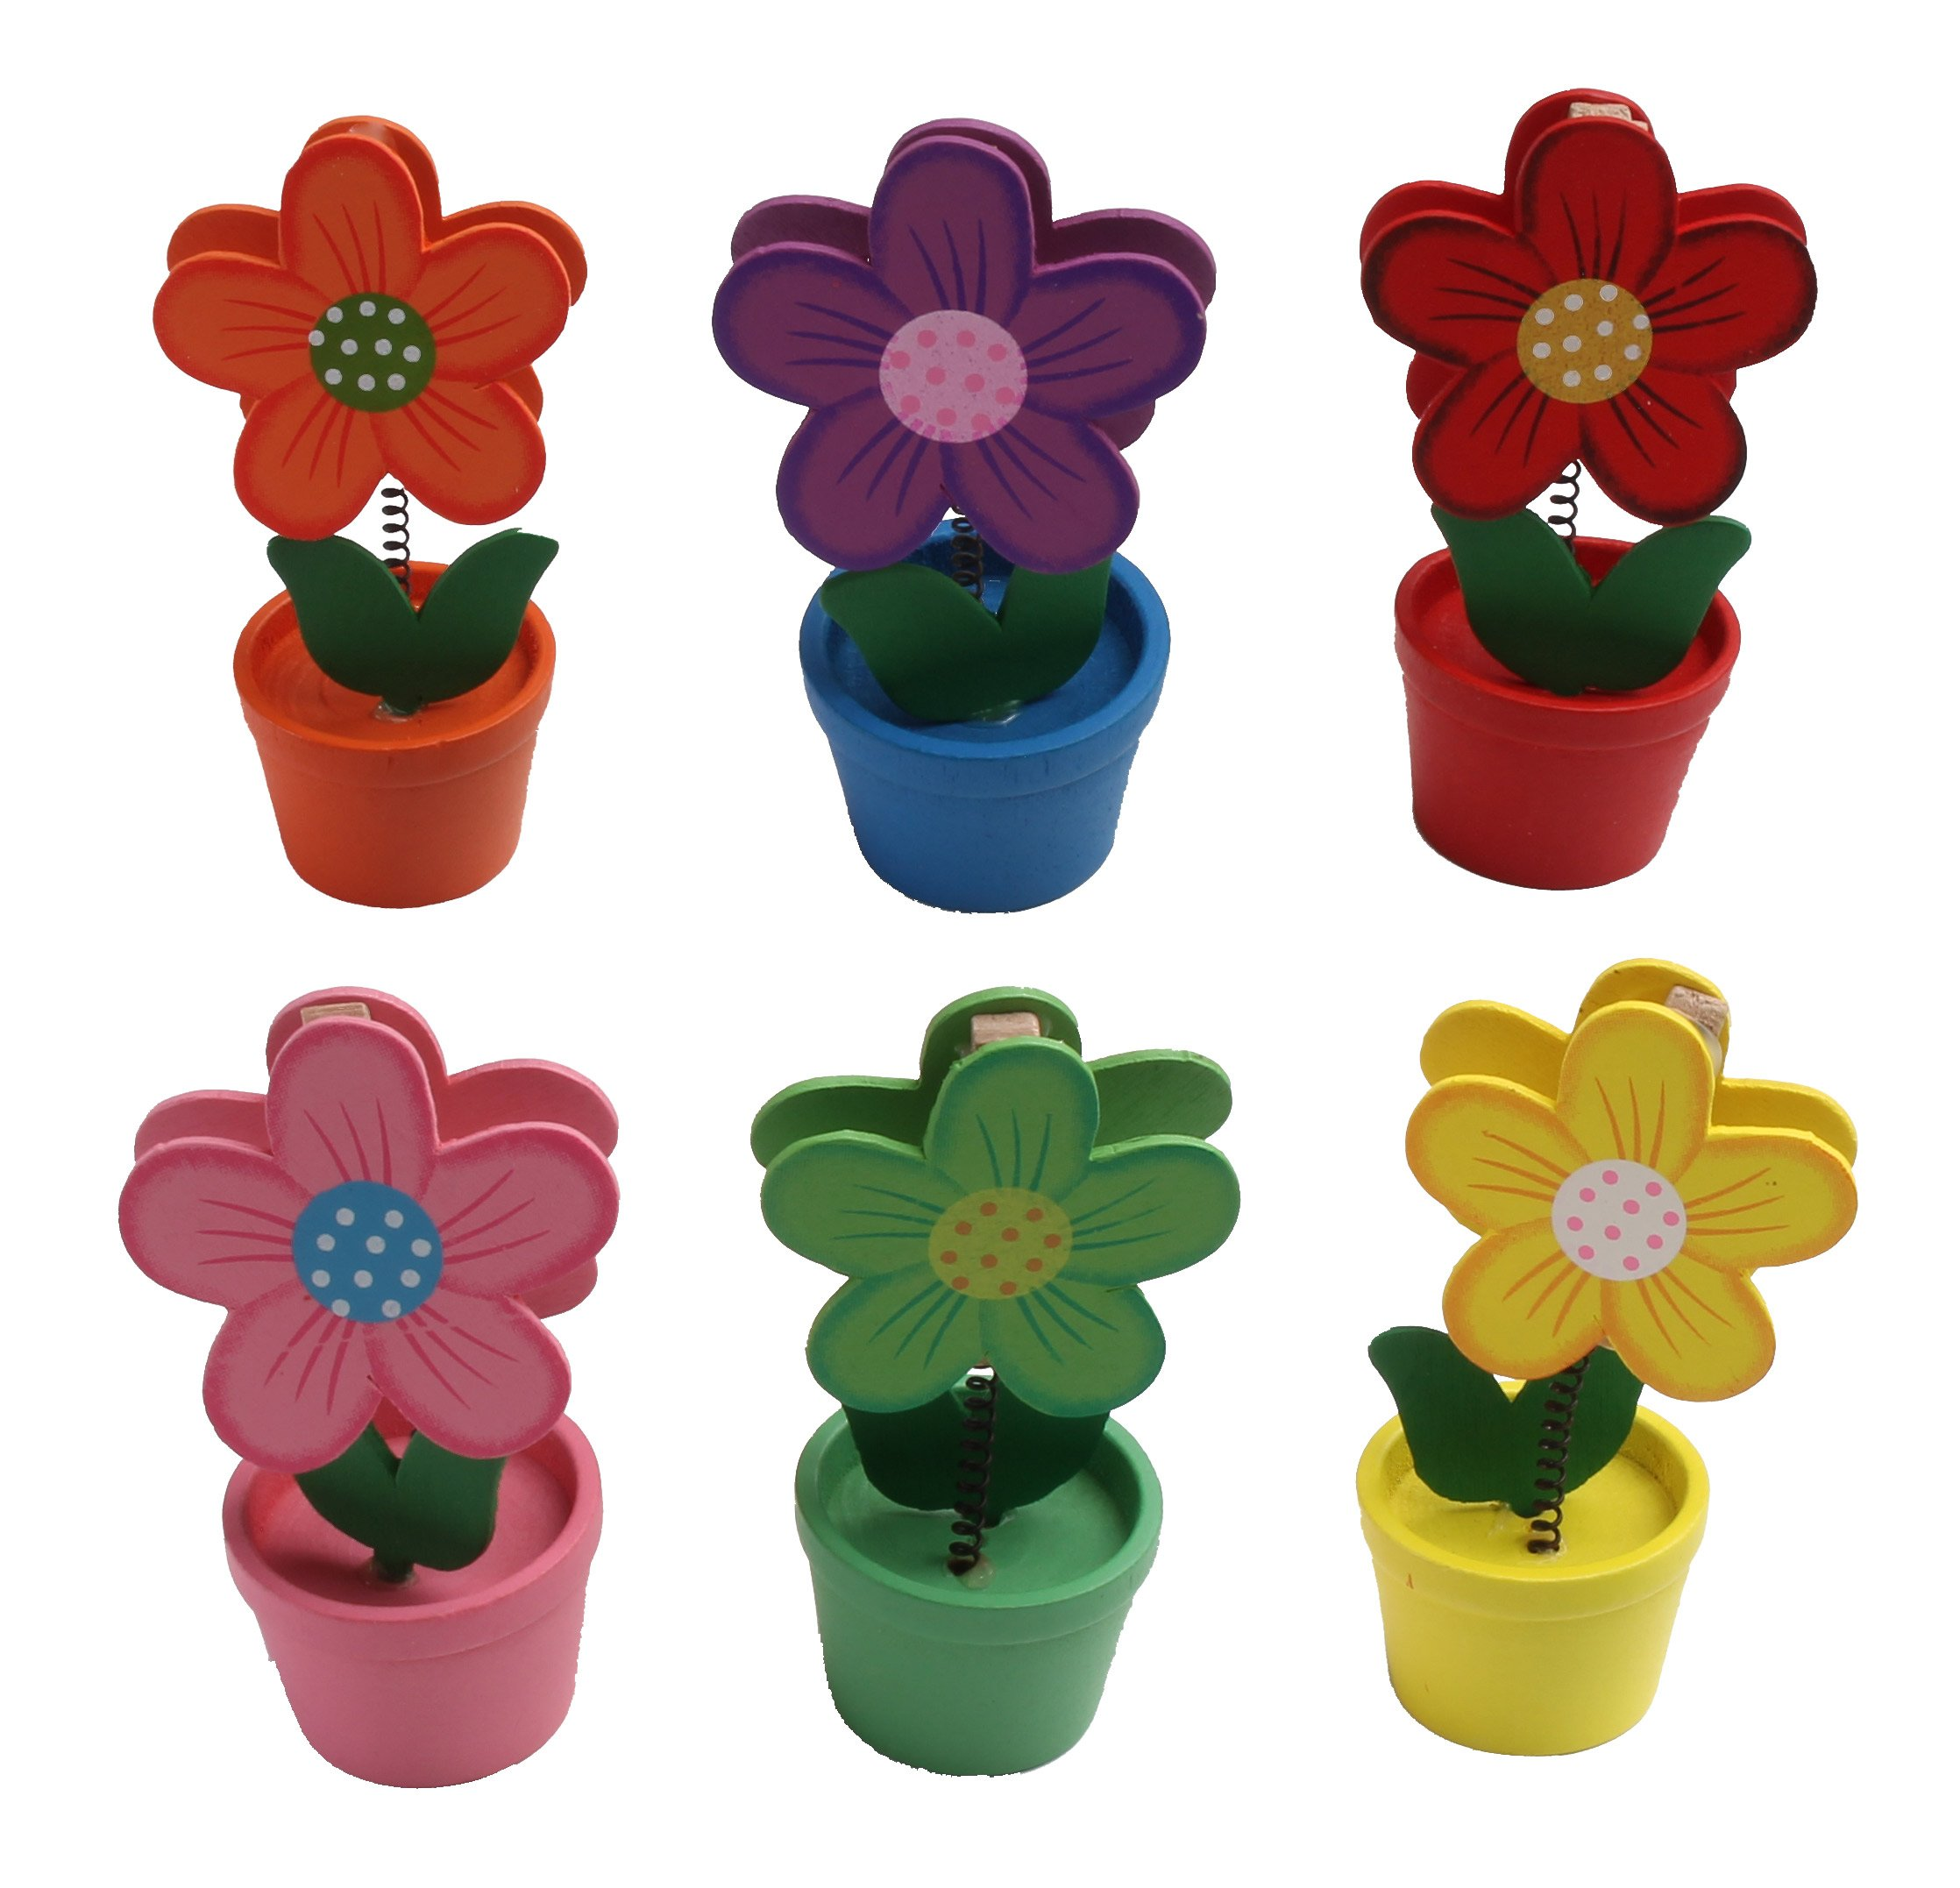 Displays2go Flower Pot Memo Holders in 6 Colors, Brightly Painted Wooden Place Card Holders, Orange, Pink, Green, Yellow, Blue and Red, Set of 30 (6FLOWERSCP)